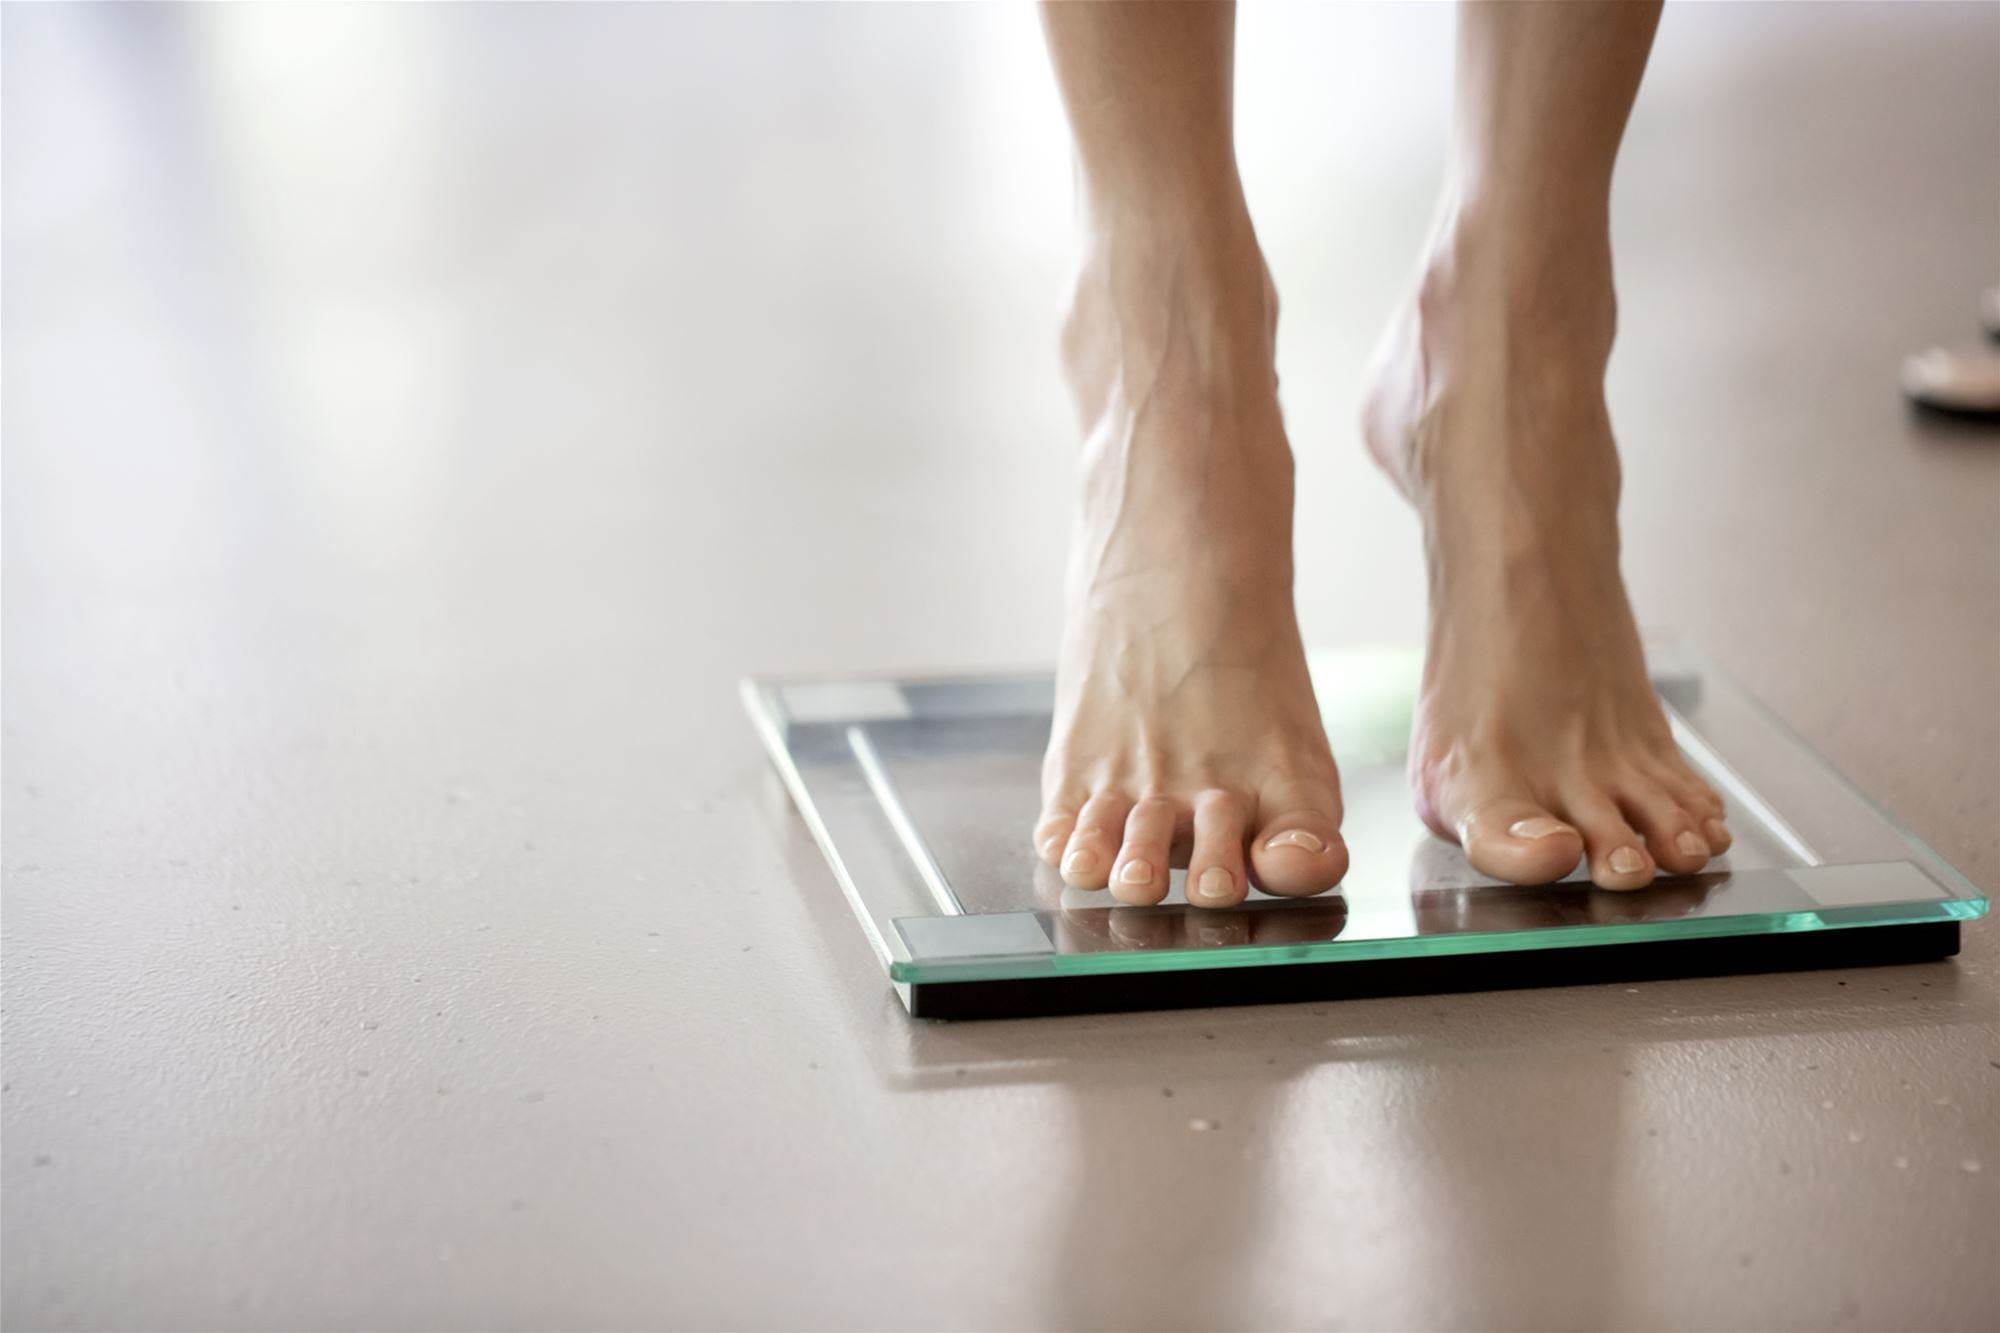 5 Things That Happened When I Weighed Myself Every Day For A Month